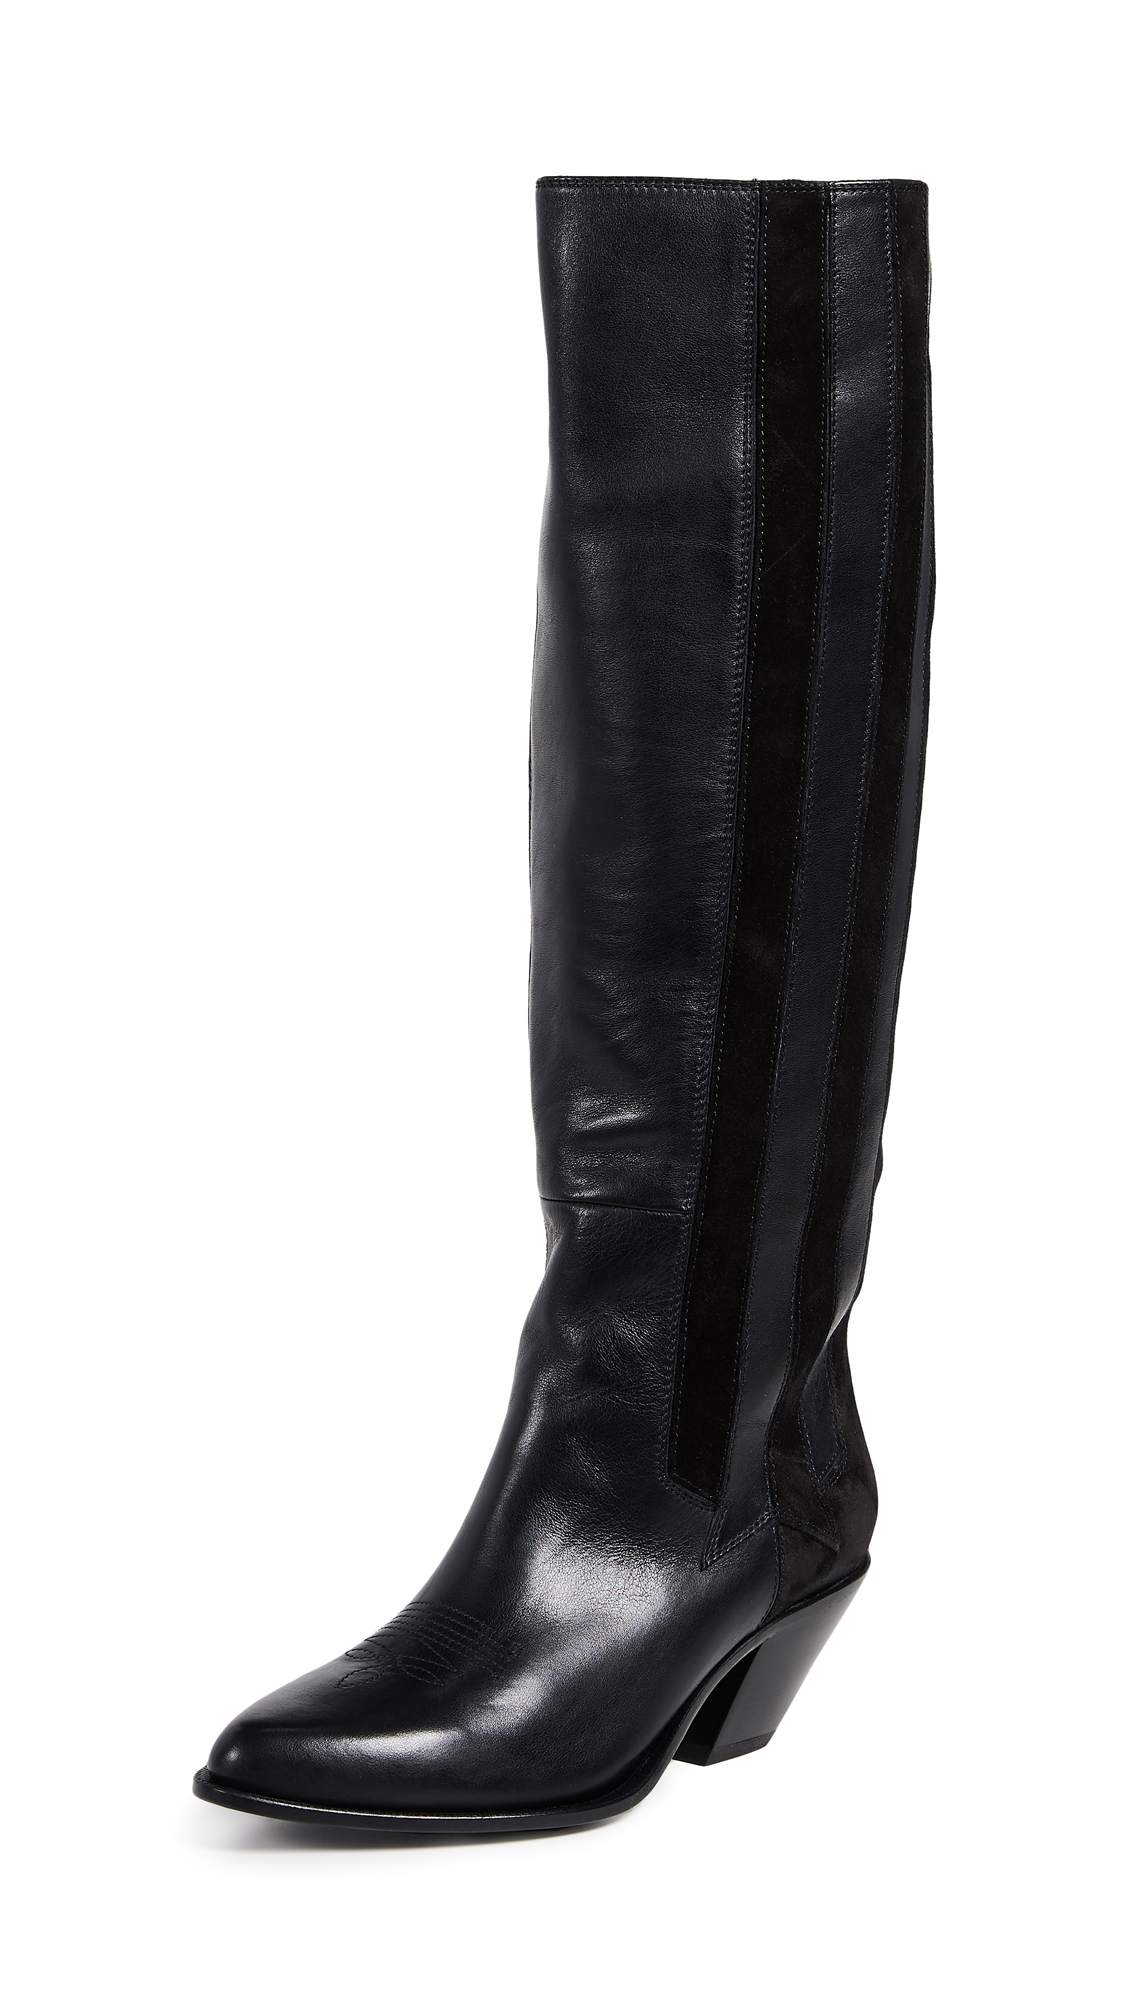 Golden Goose Nebbia Boots - Black